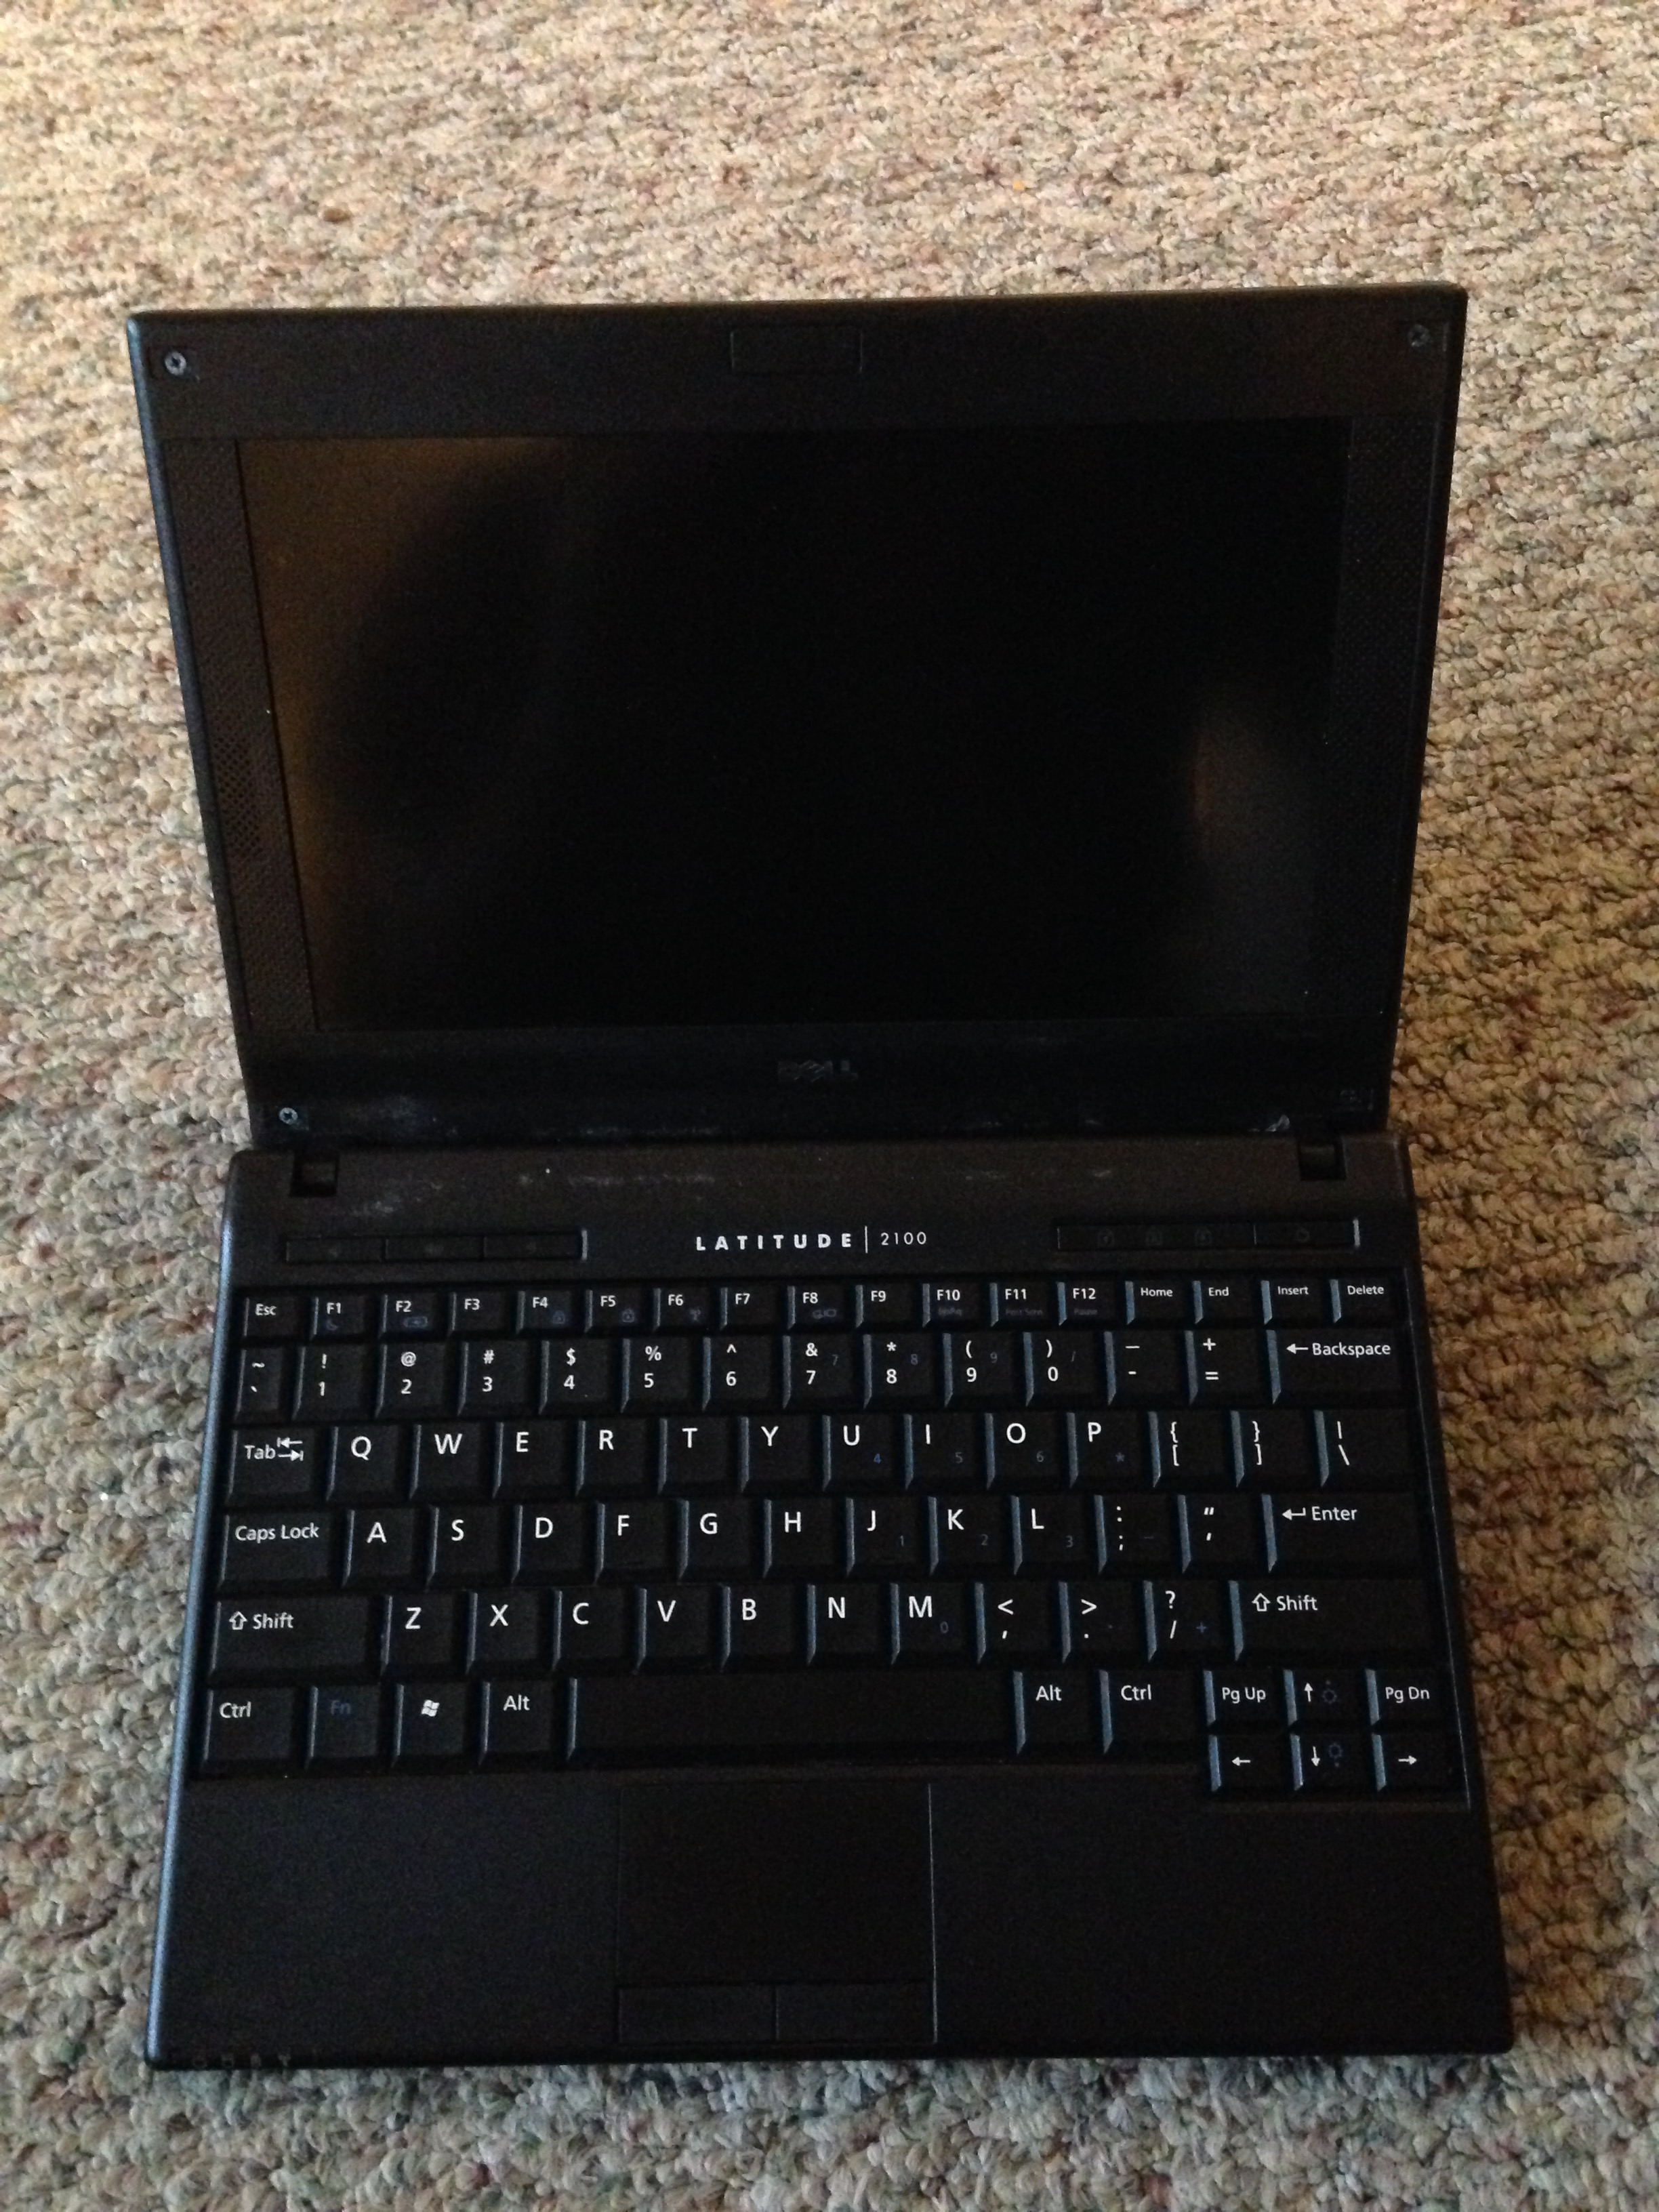 My travel netbook, open.